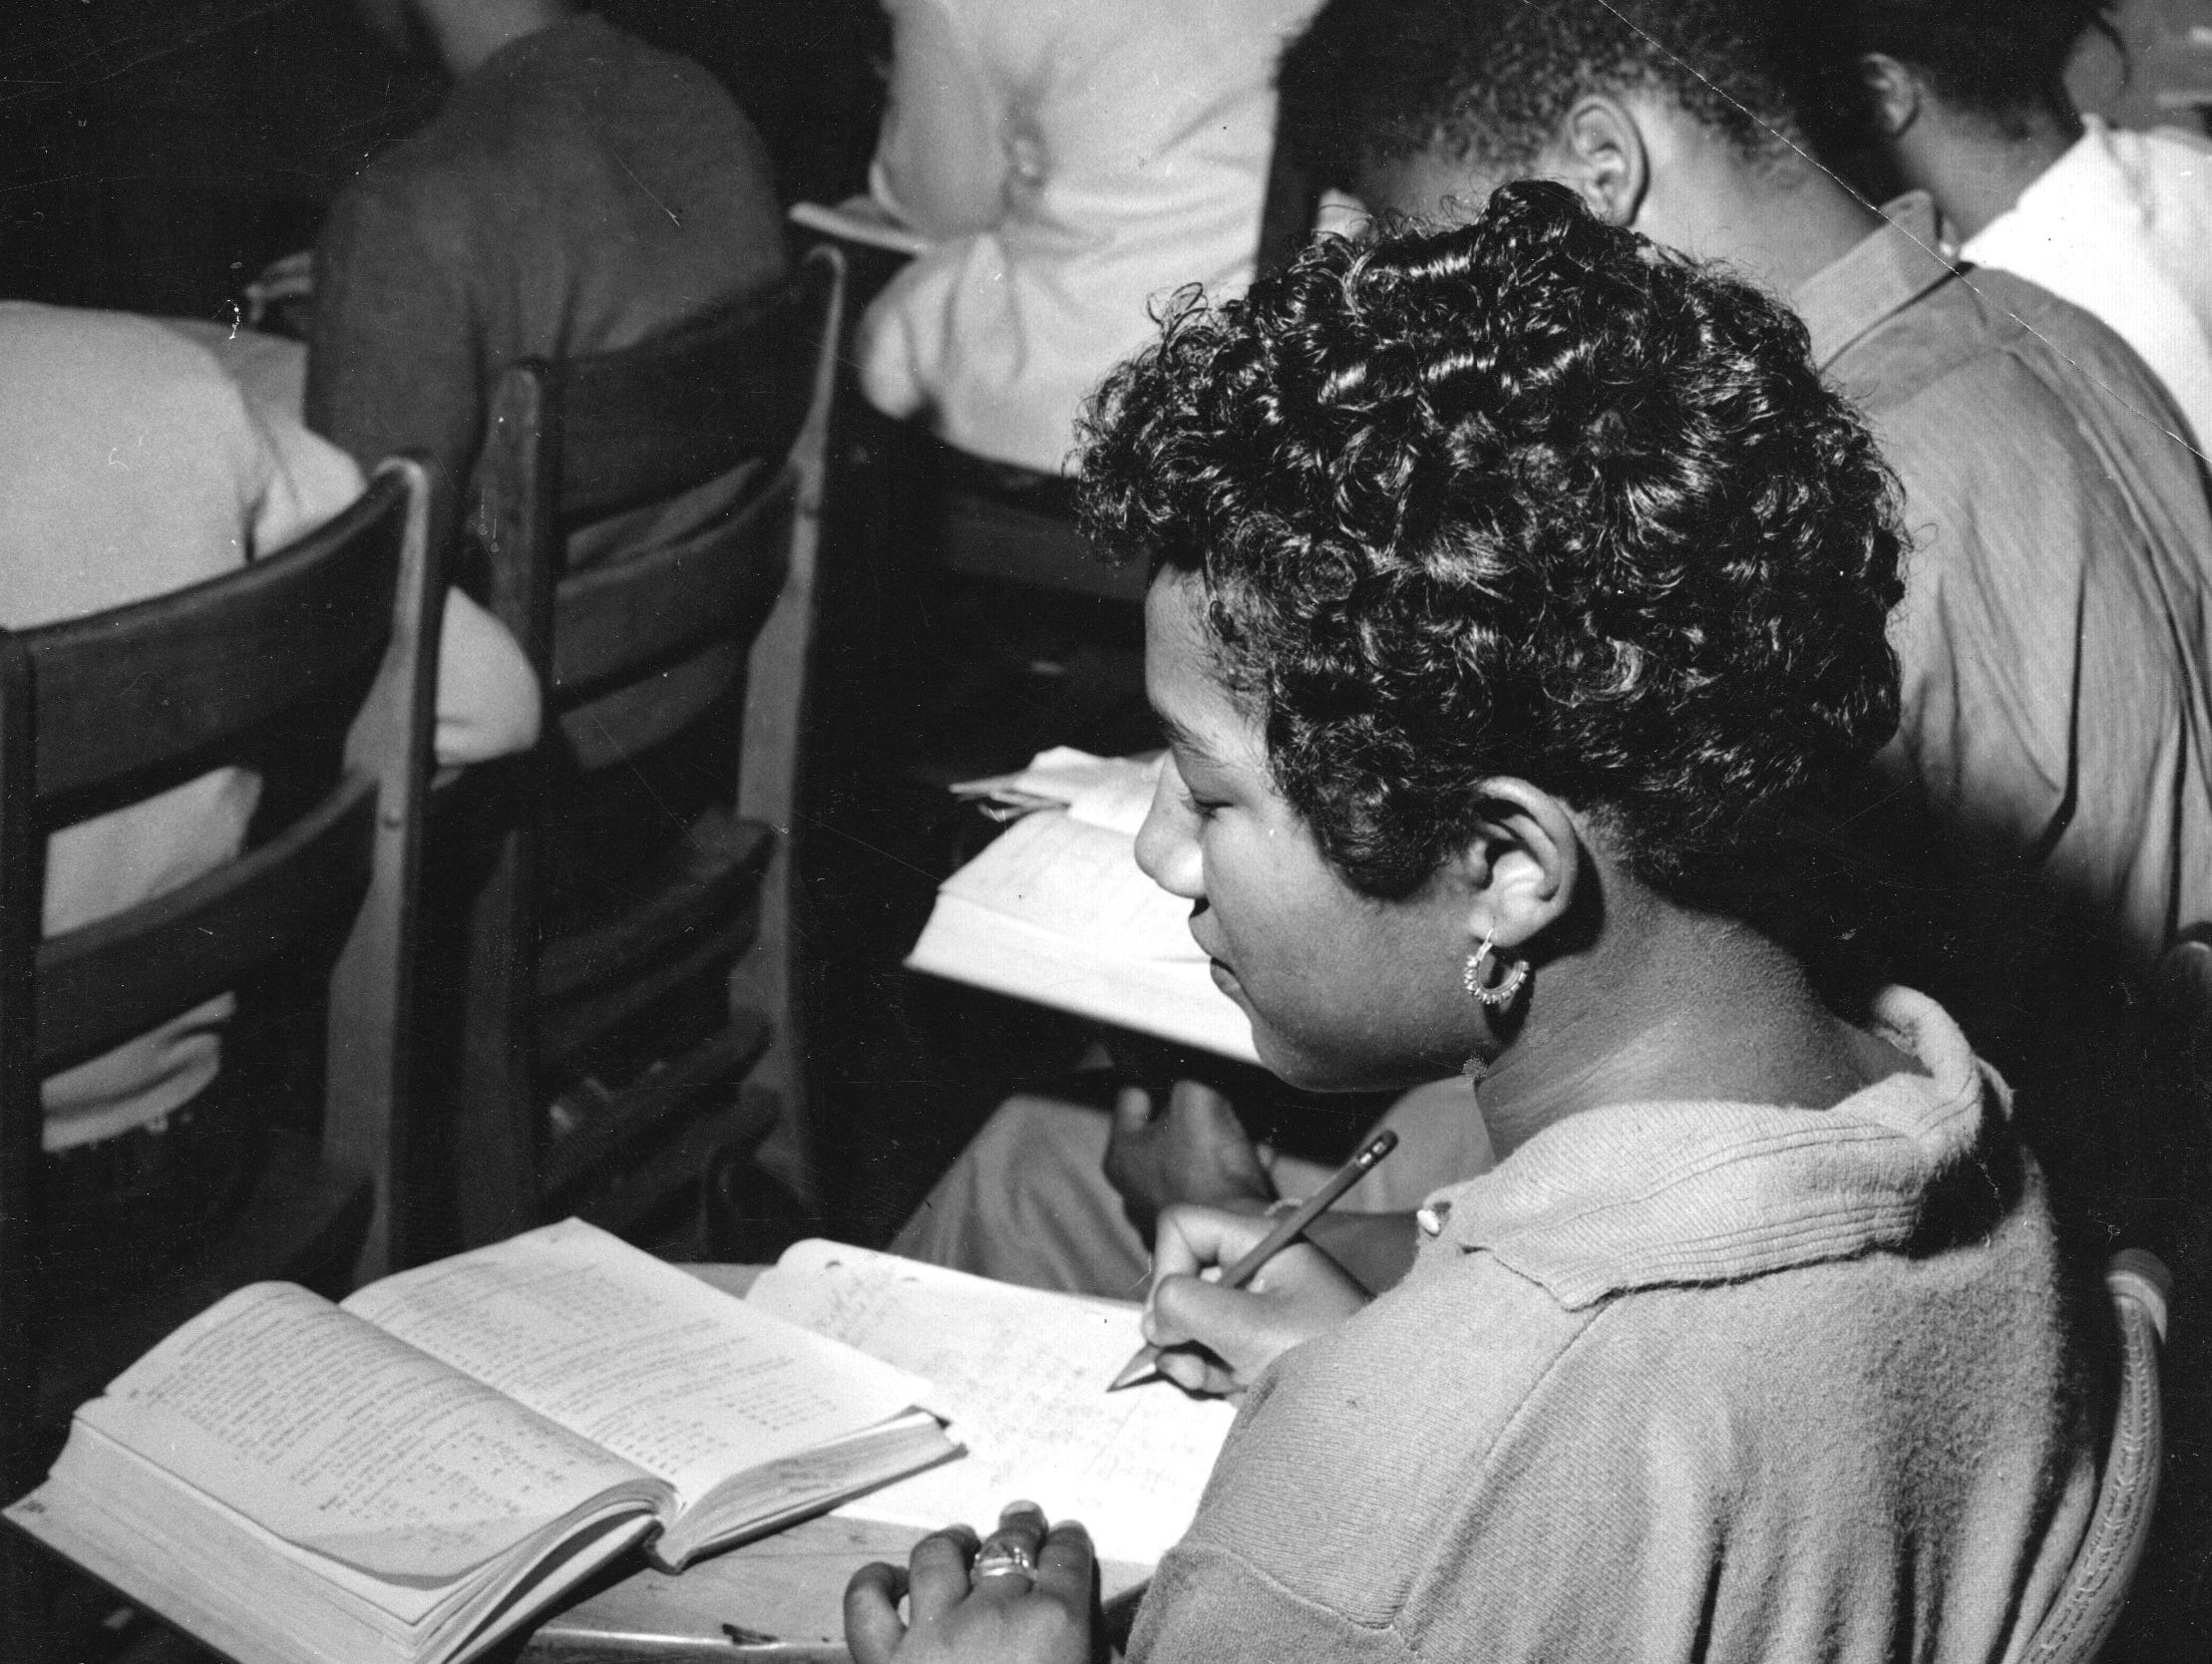 An unidentified Crispus Attucks student works on a math problem in class in 1954.